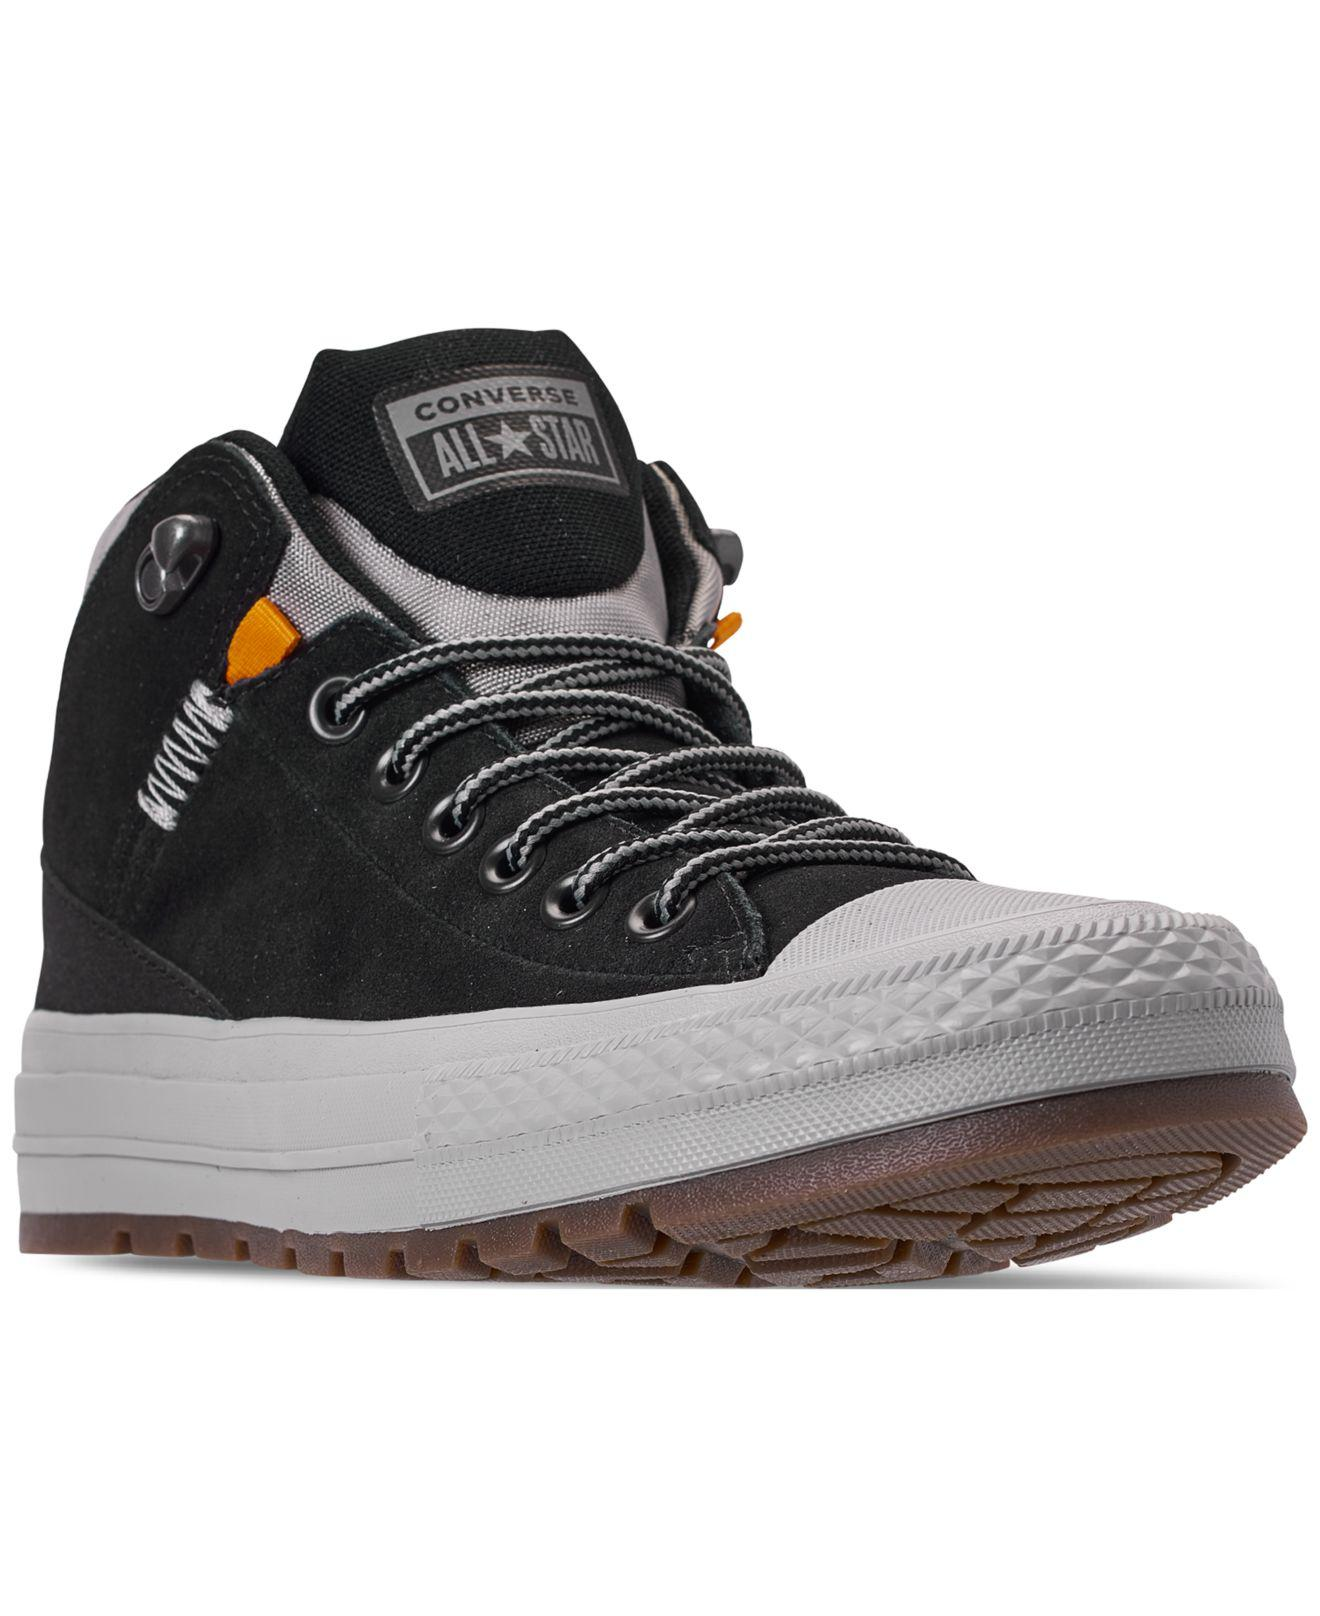 834a547c5c Lyst - Converse Chuck Taylor All Star Street Boot Casual Sneakers ...